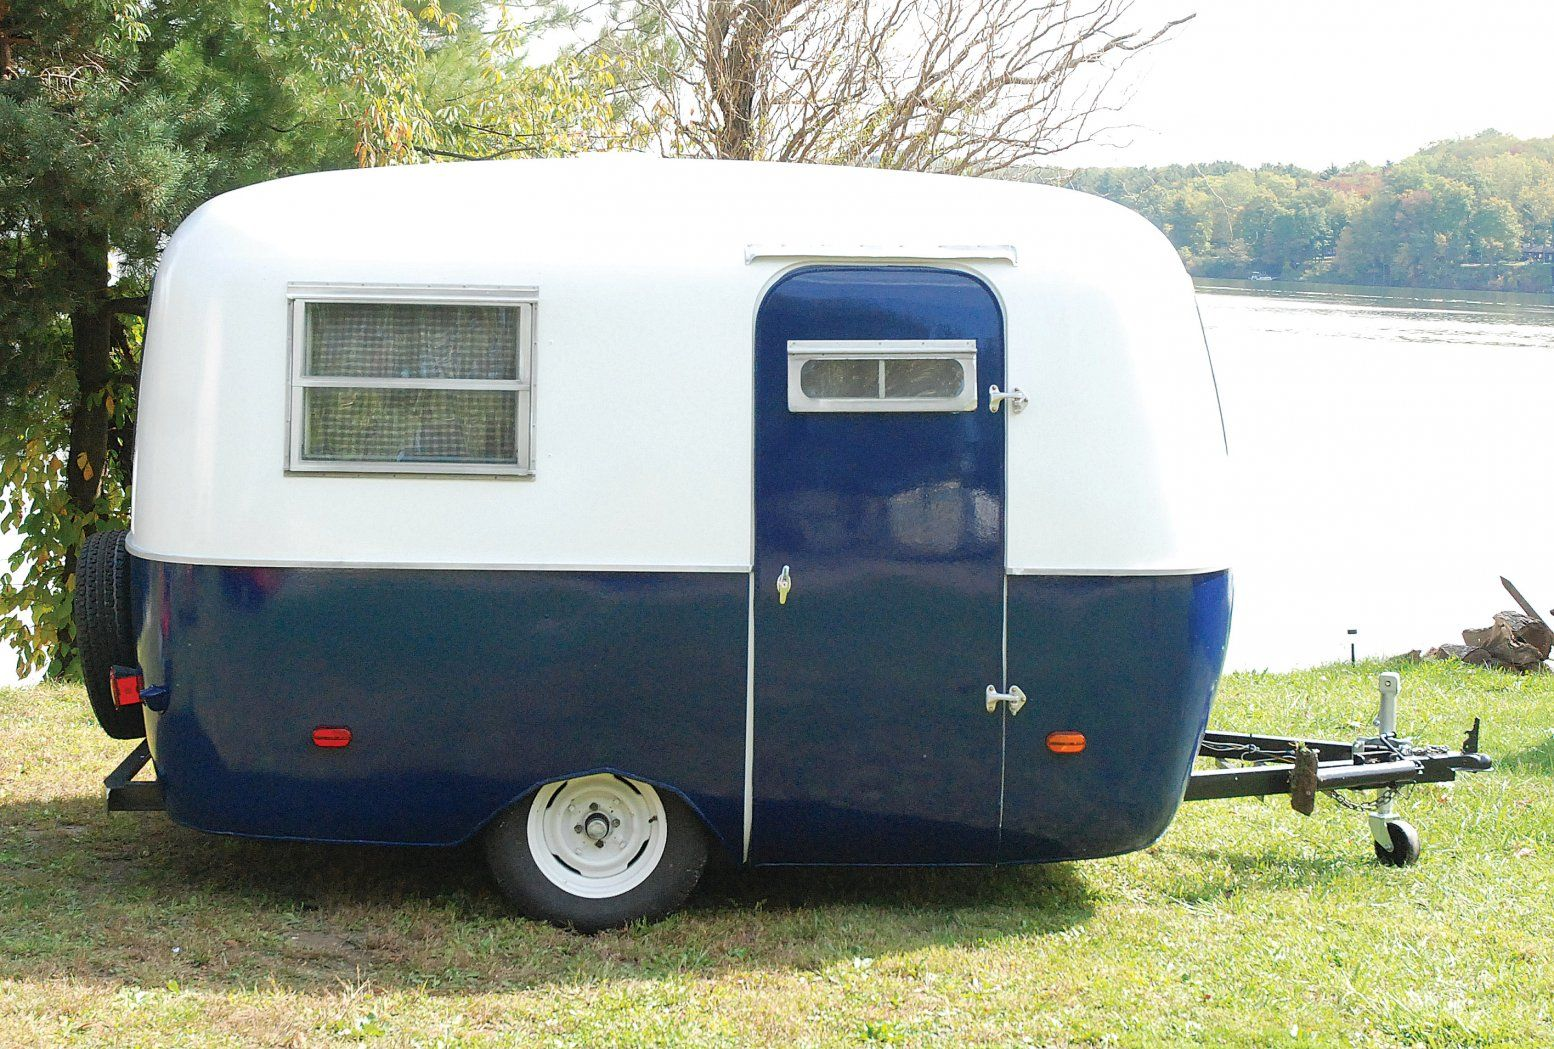 Find This Pin And More On Bolers, Campers, Caravans And Trailers